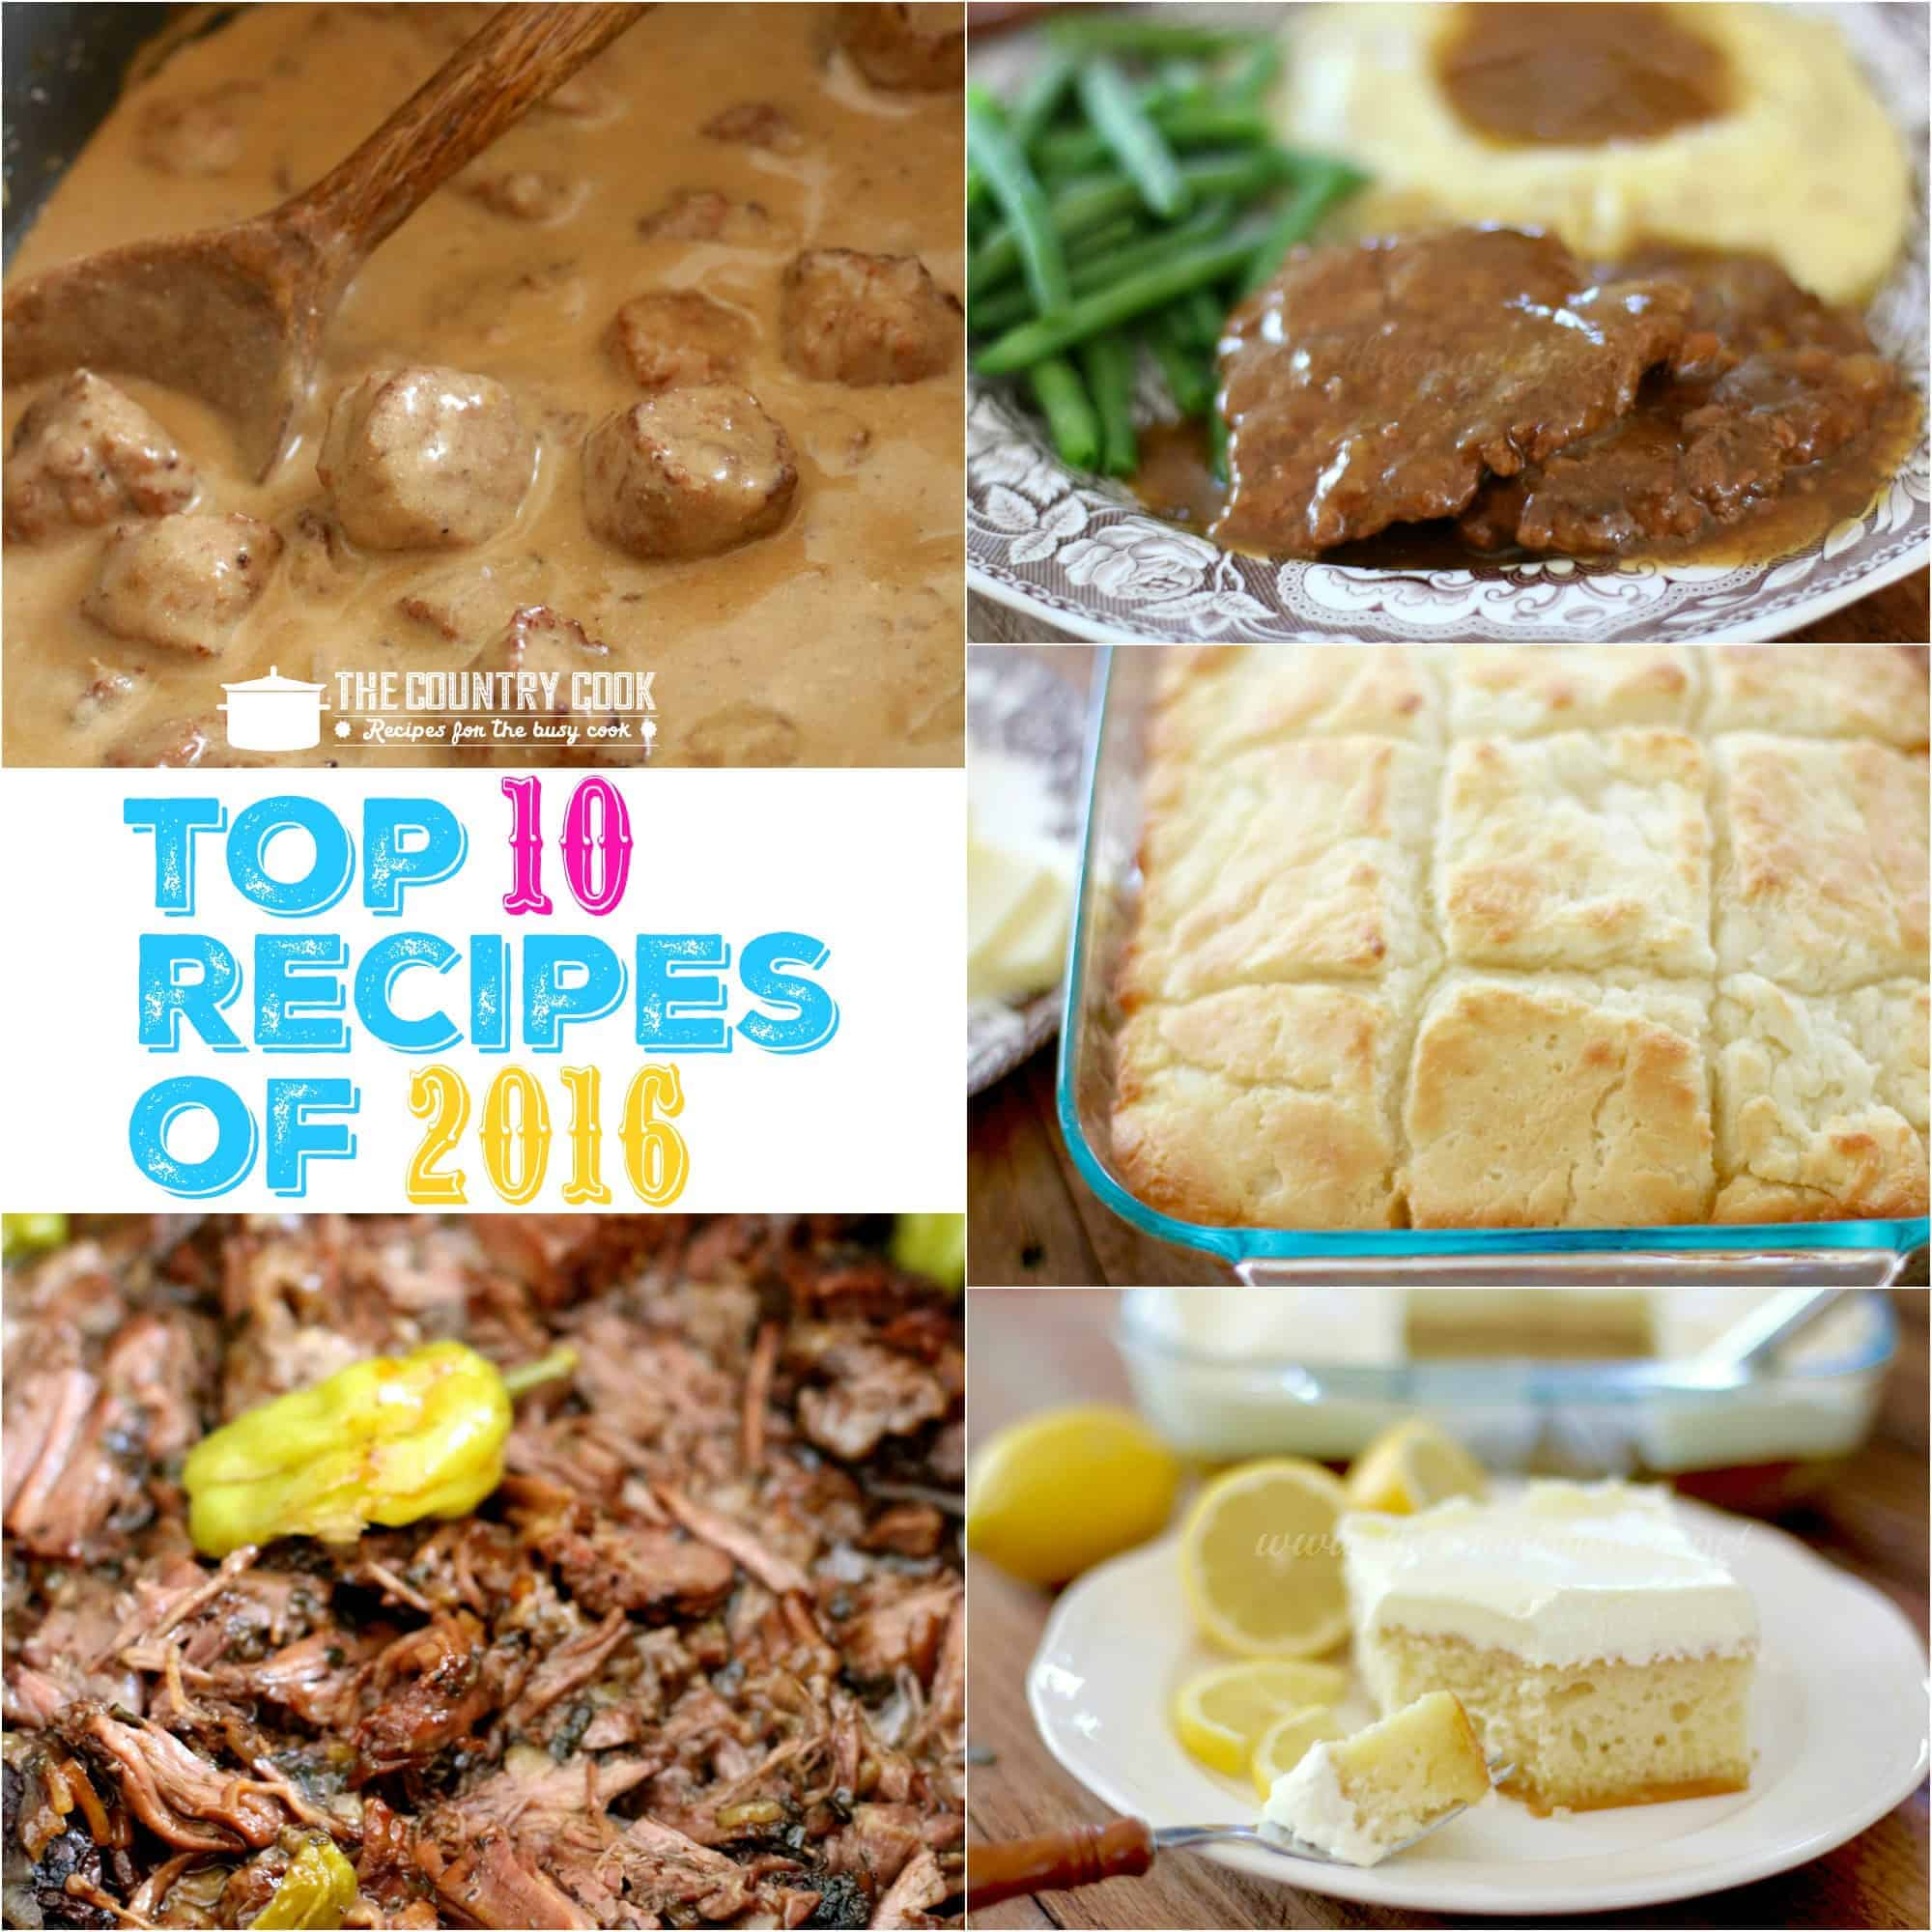 Top 10 recipes of 2016 the country cook forumfinder Gallery